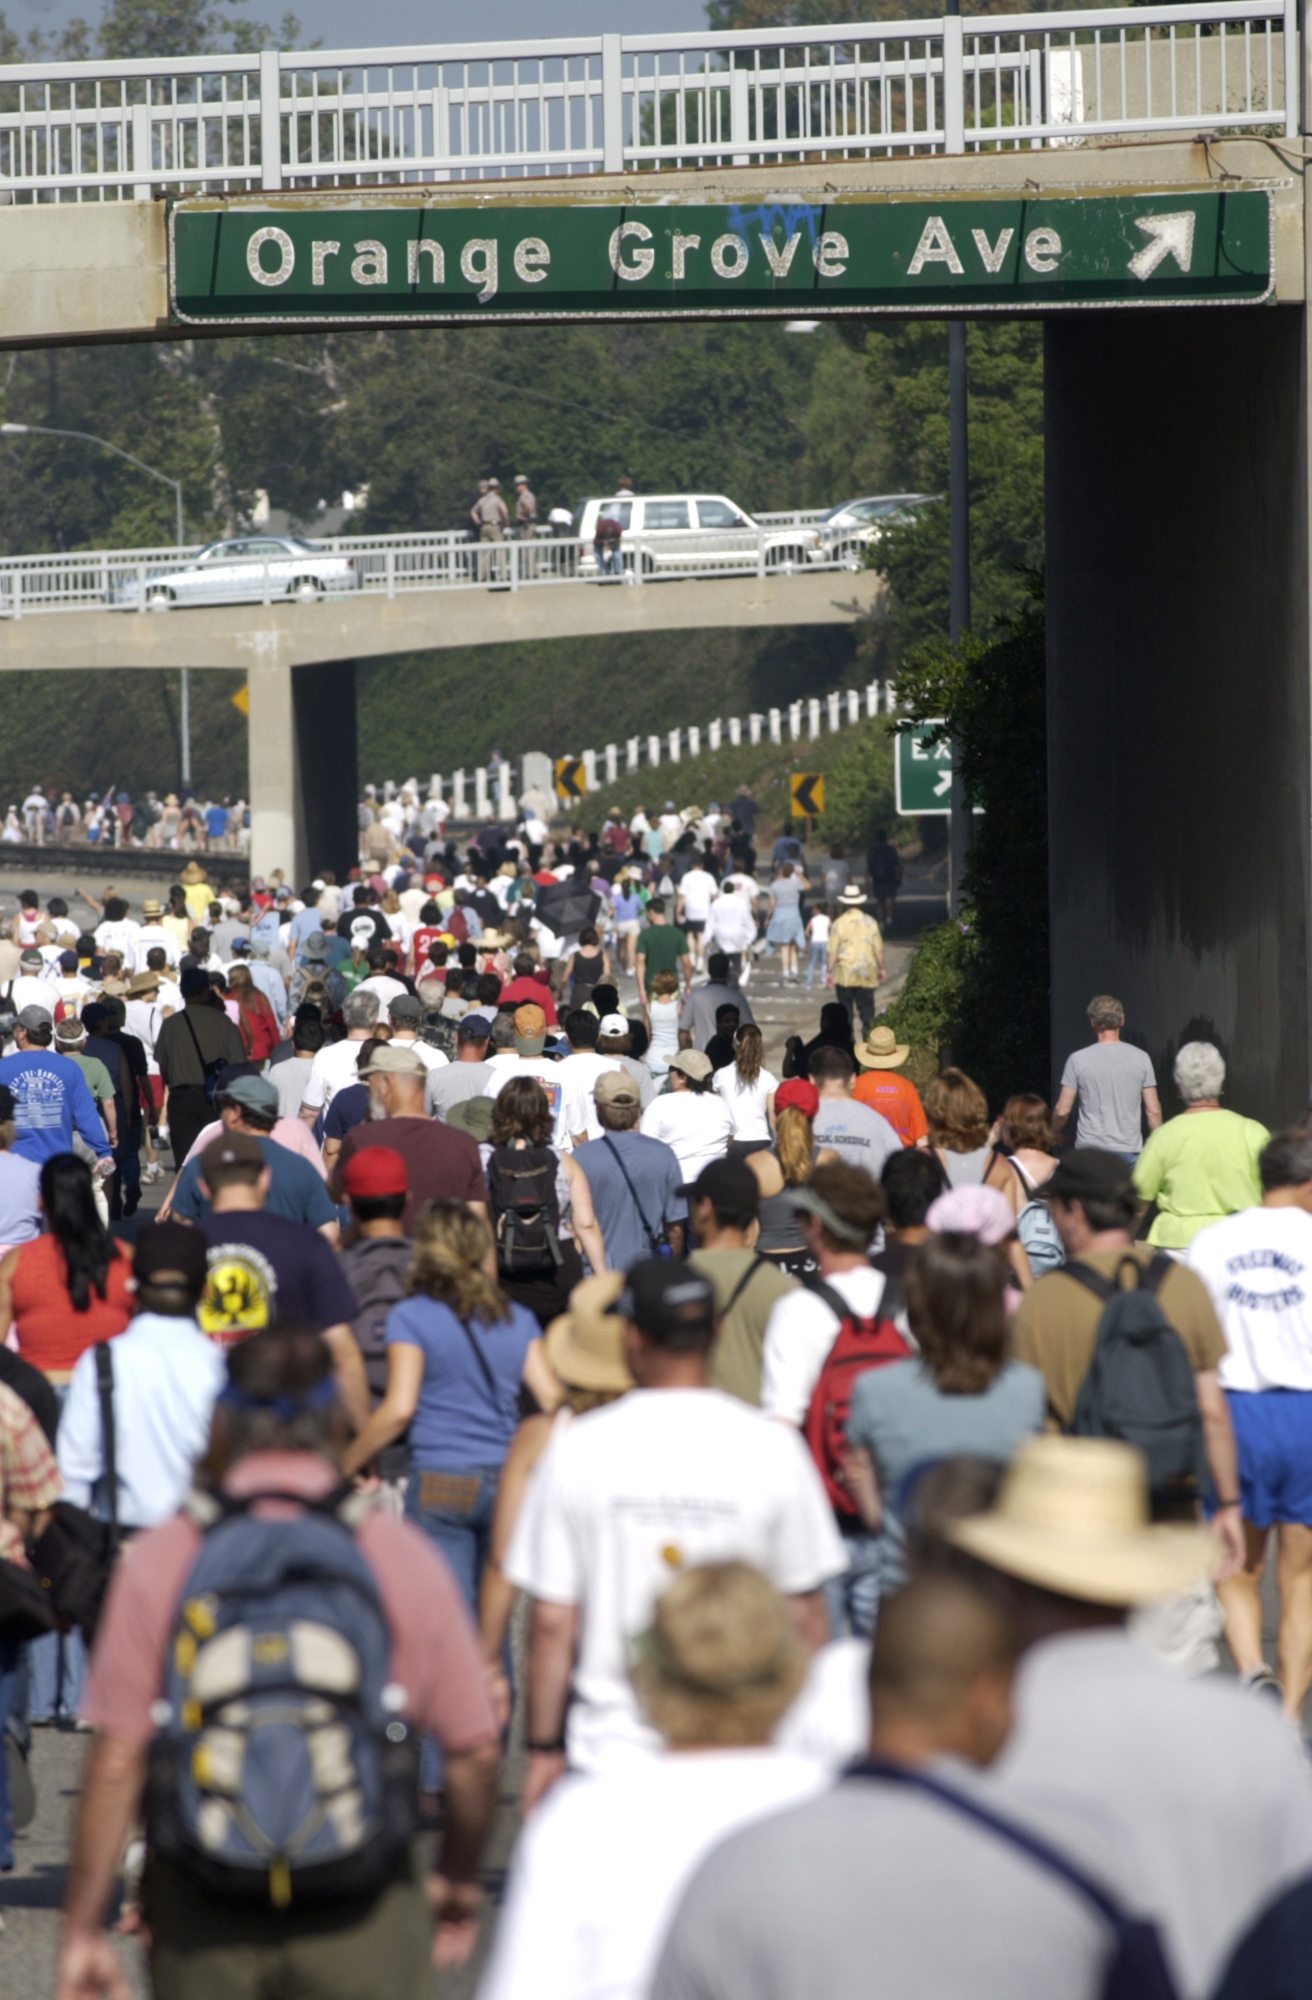 A thick crowd of people walking on a freeway.